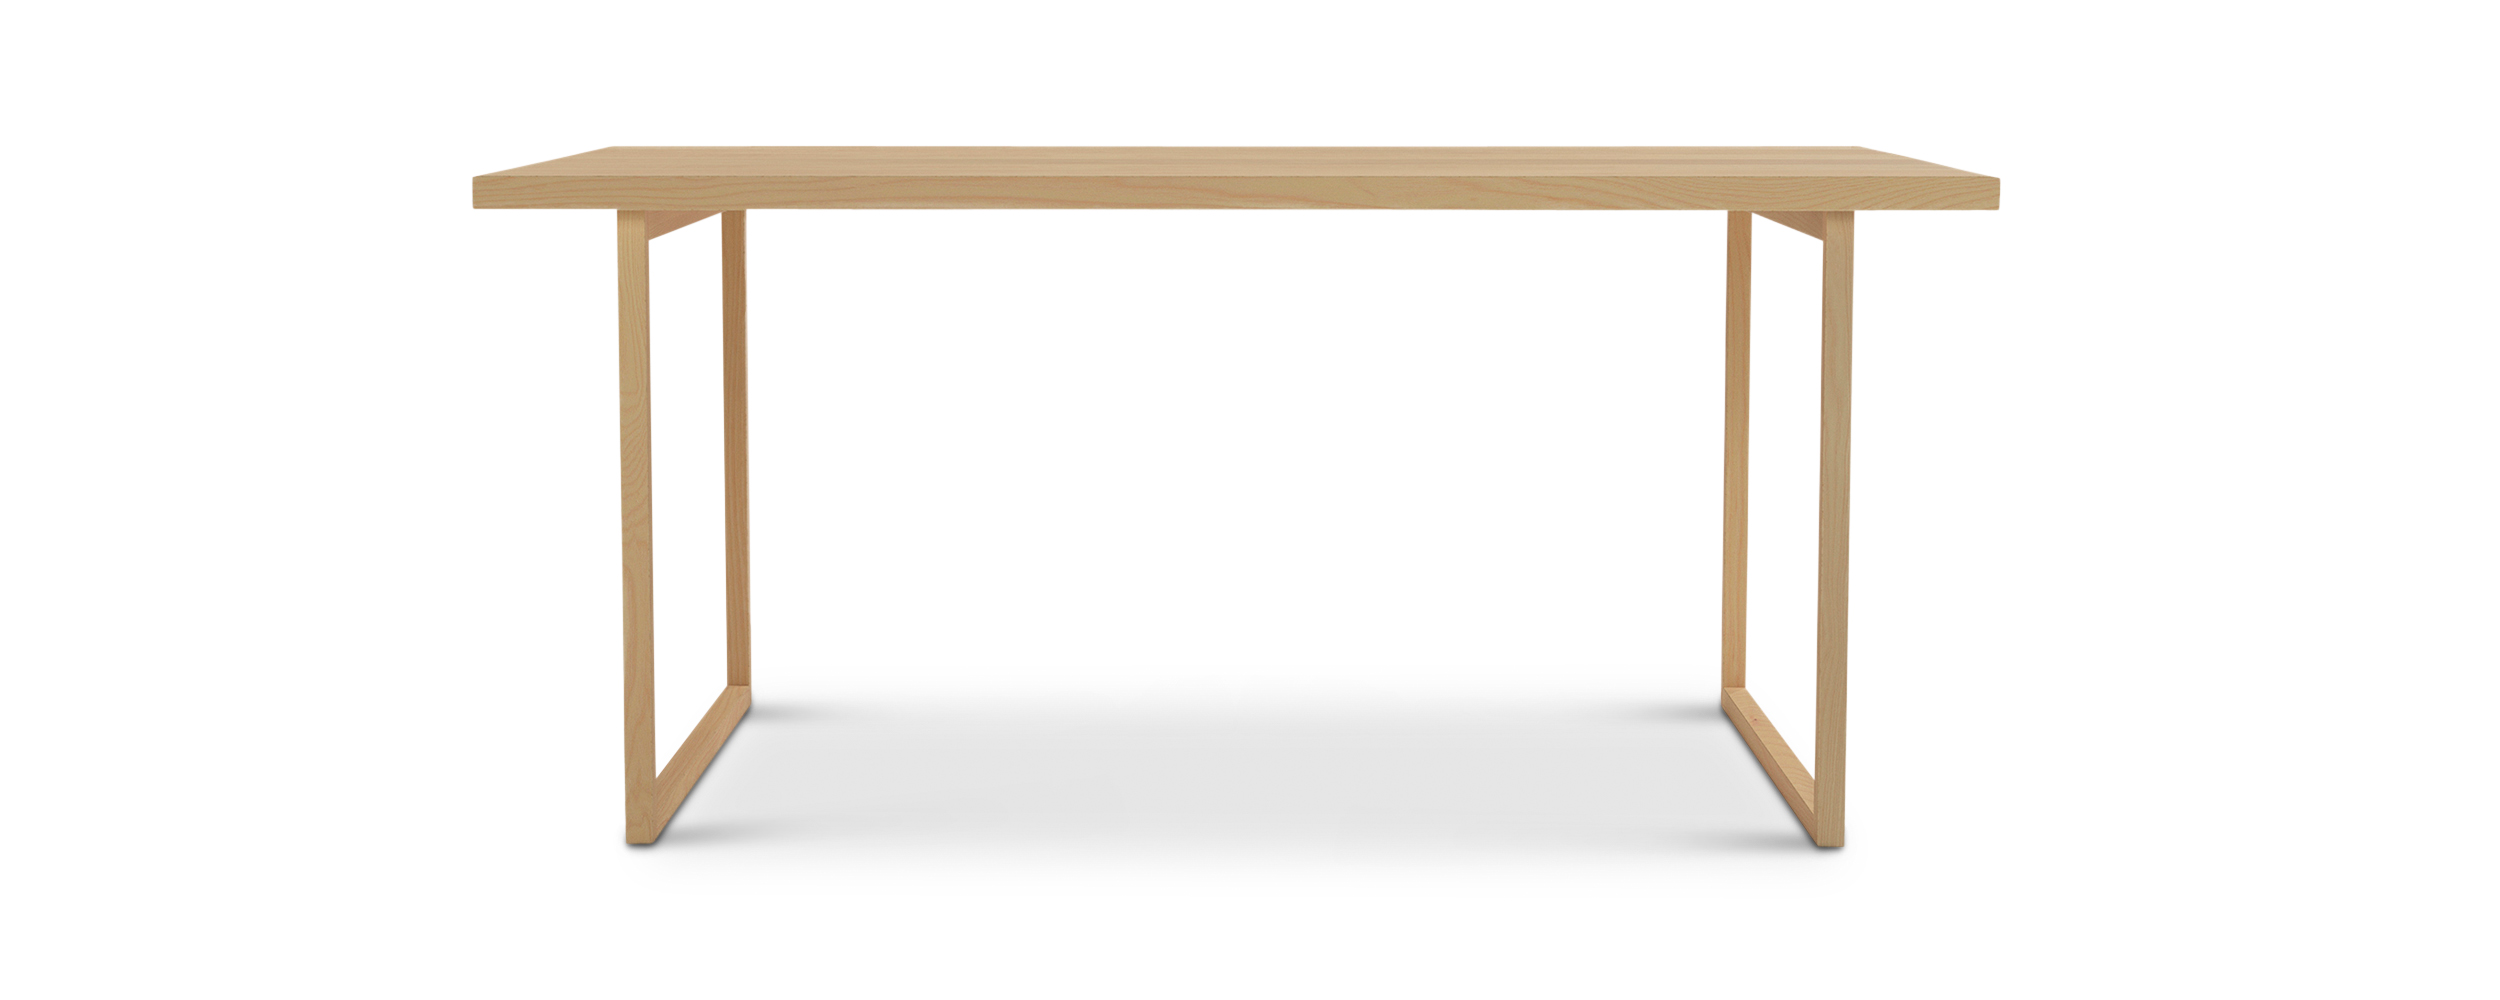 "Series 272 66"" modern danish furniture table with square legs"